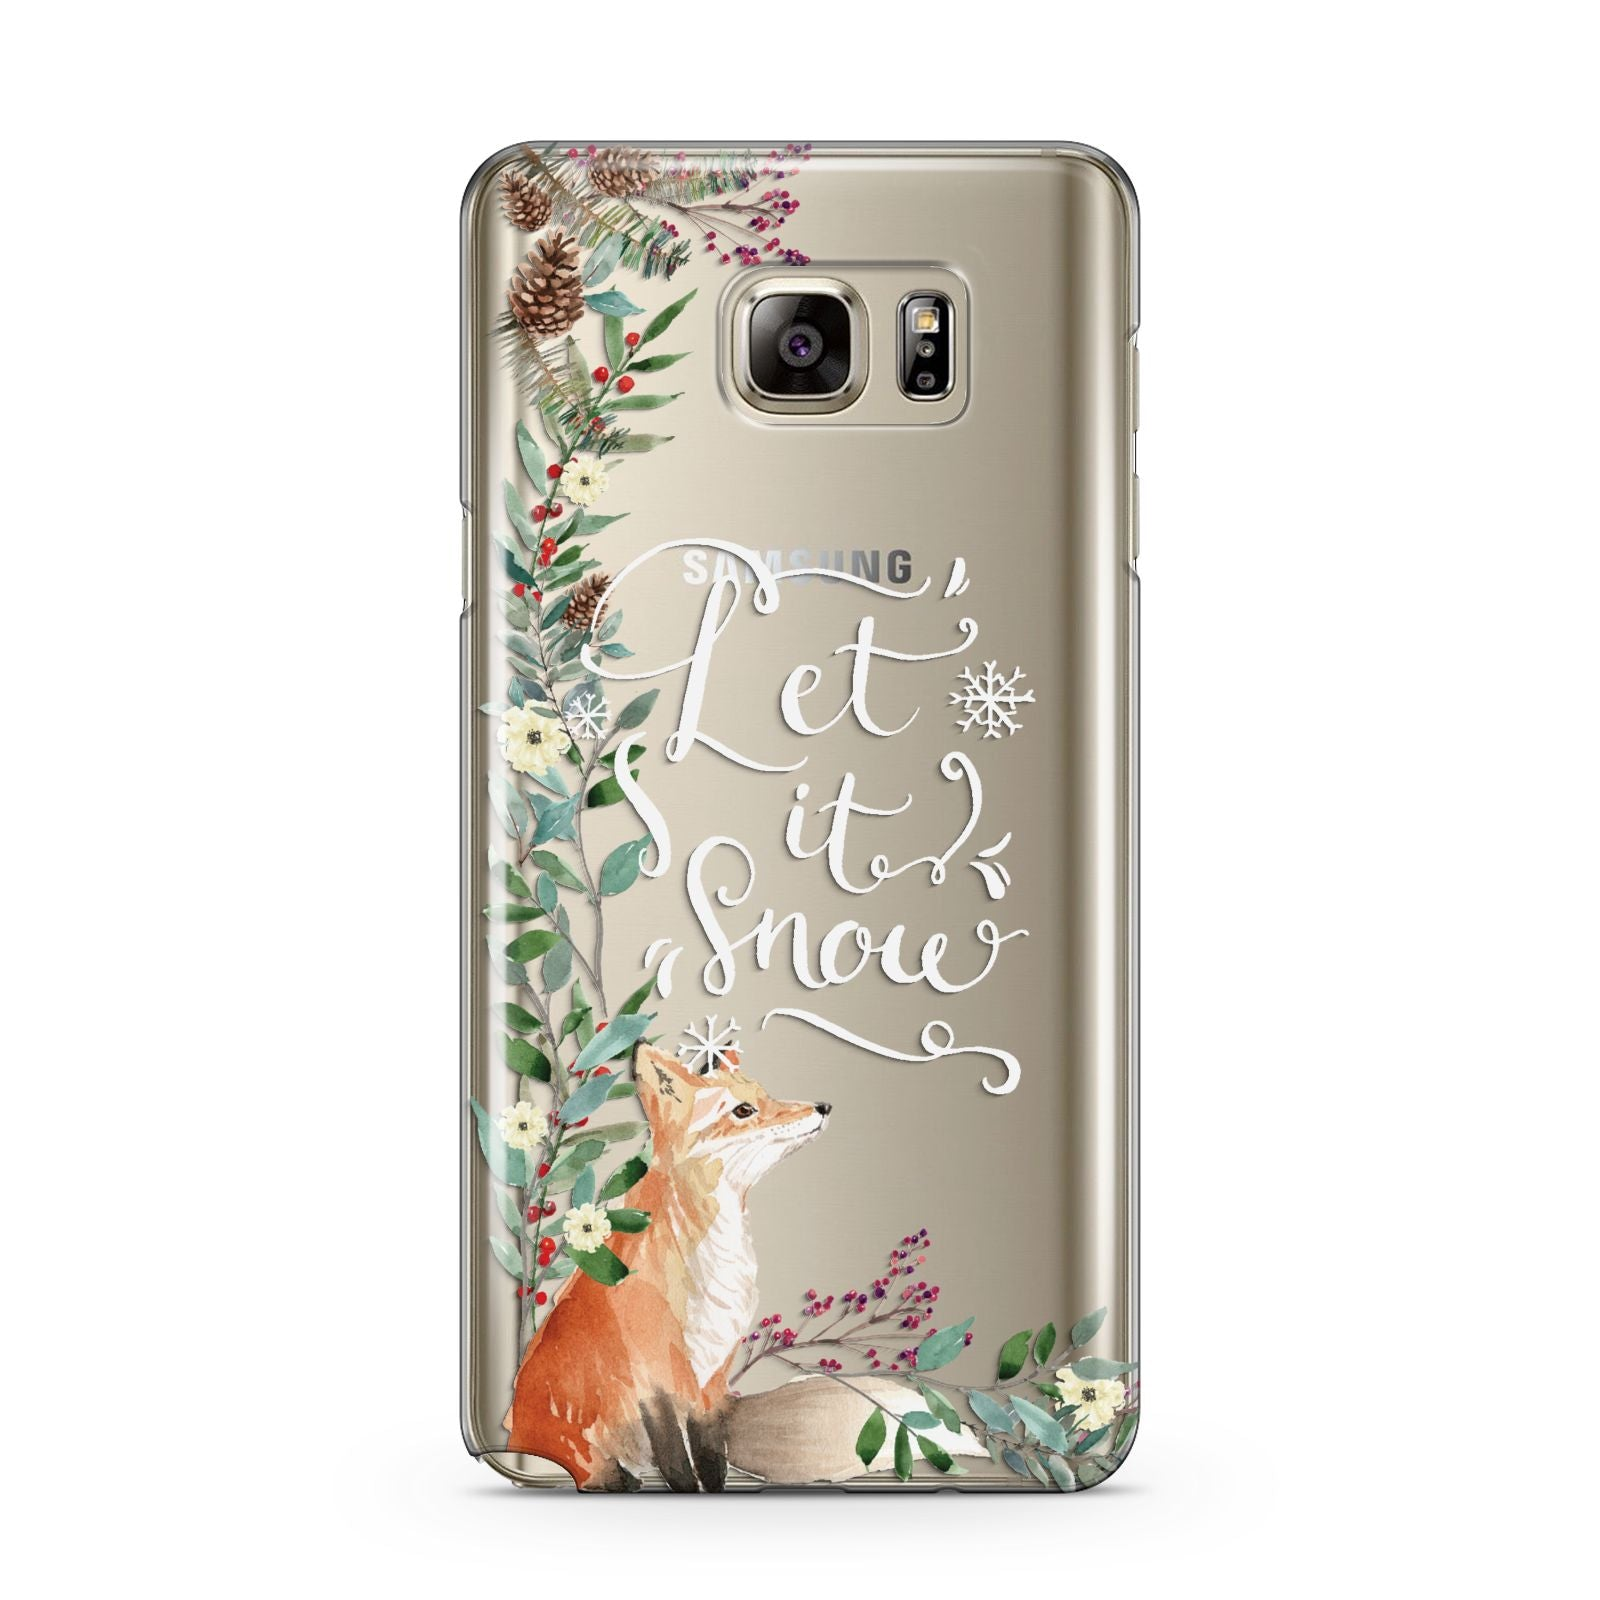 Let It Snow Christmas Samsung Galaxy Note 5 Case